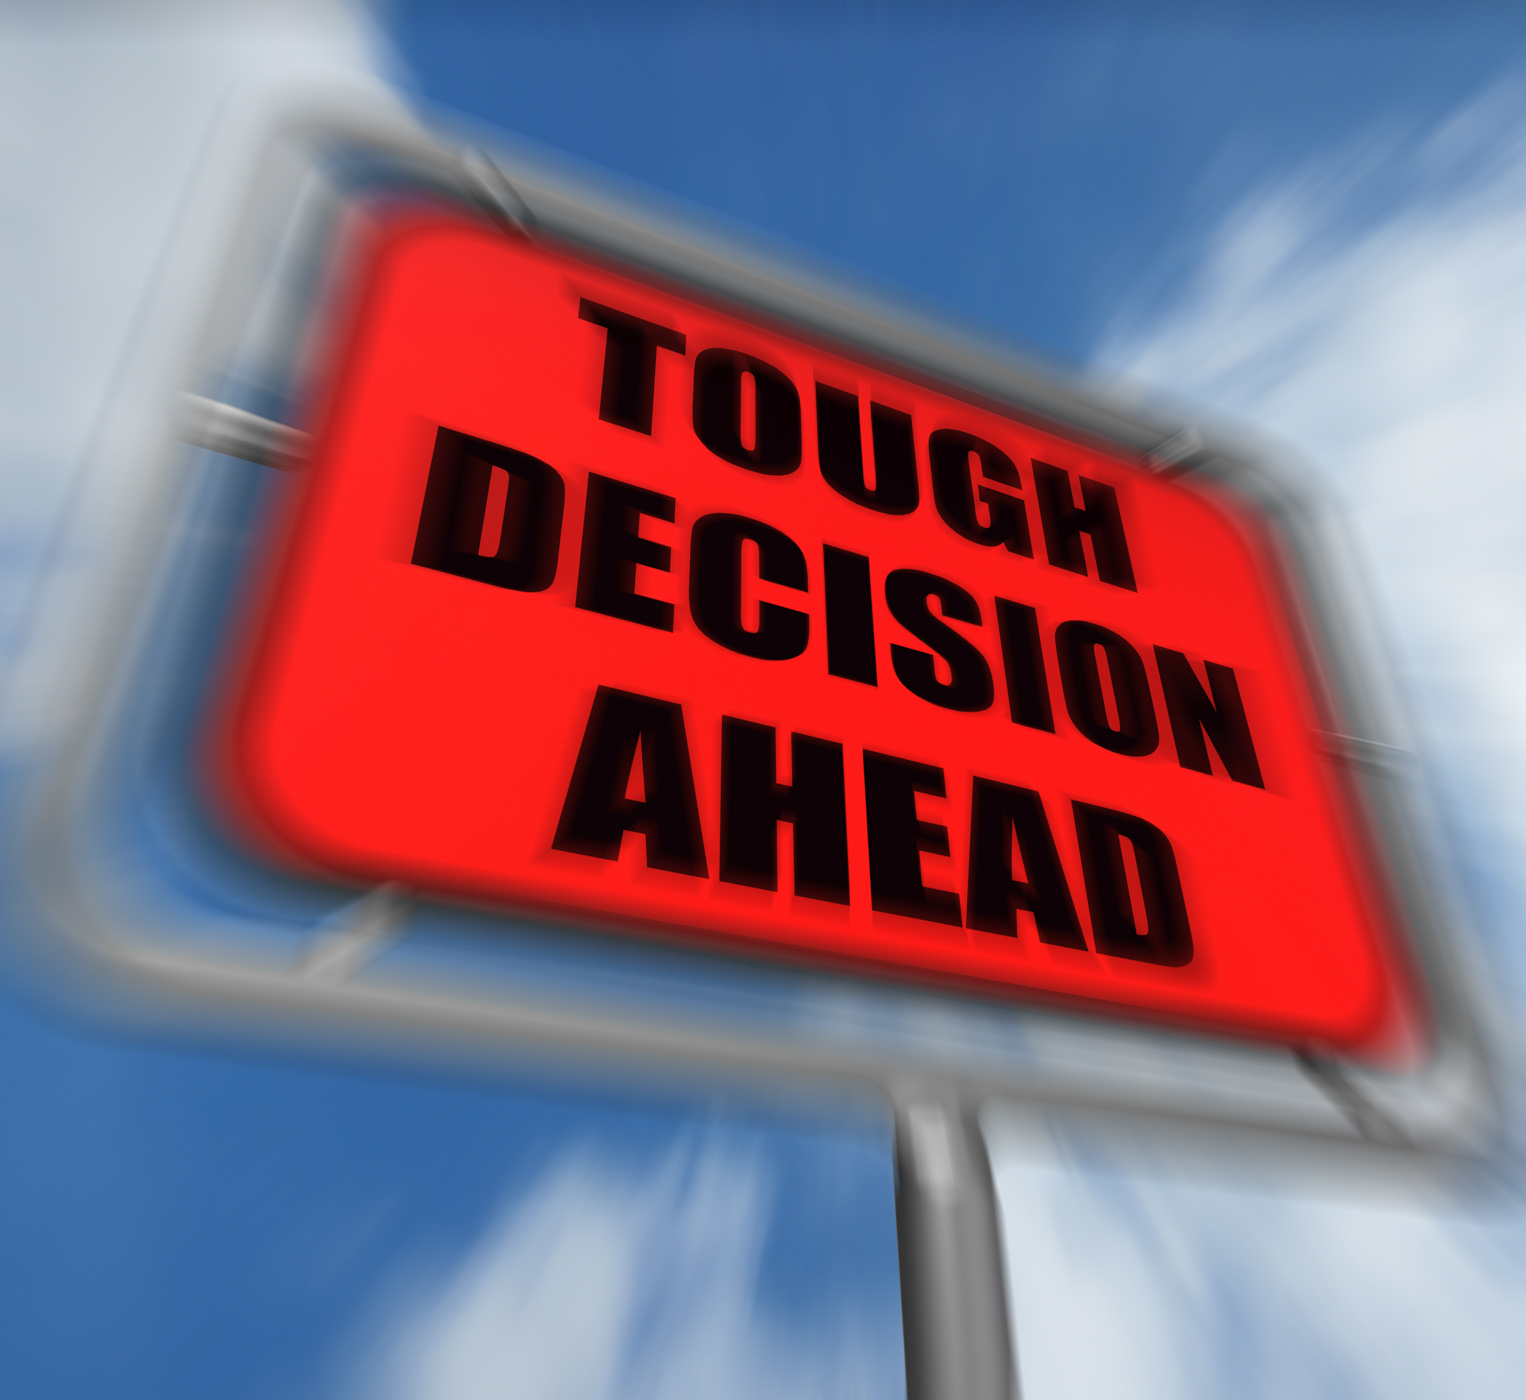 Tough decision ahead sign displays uncertainty and difficult choice photo